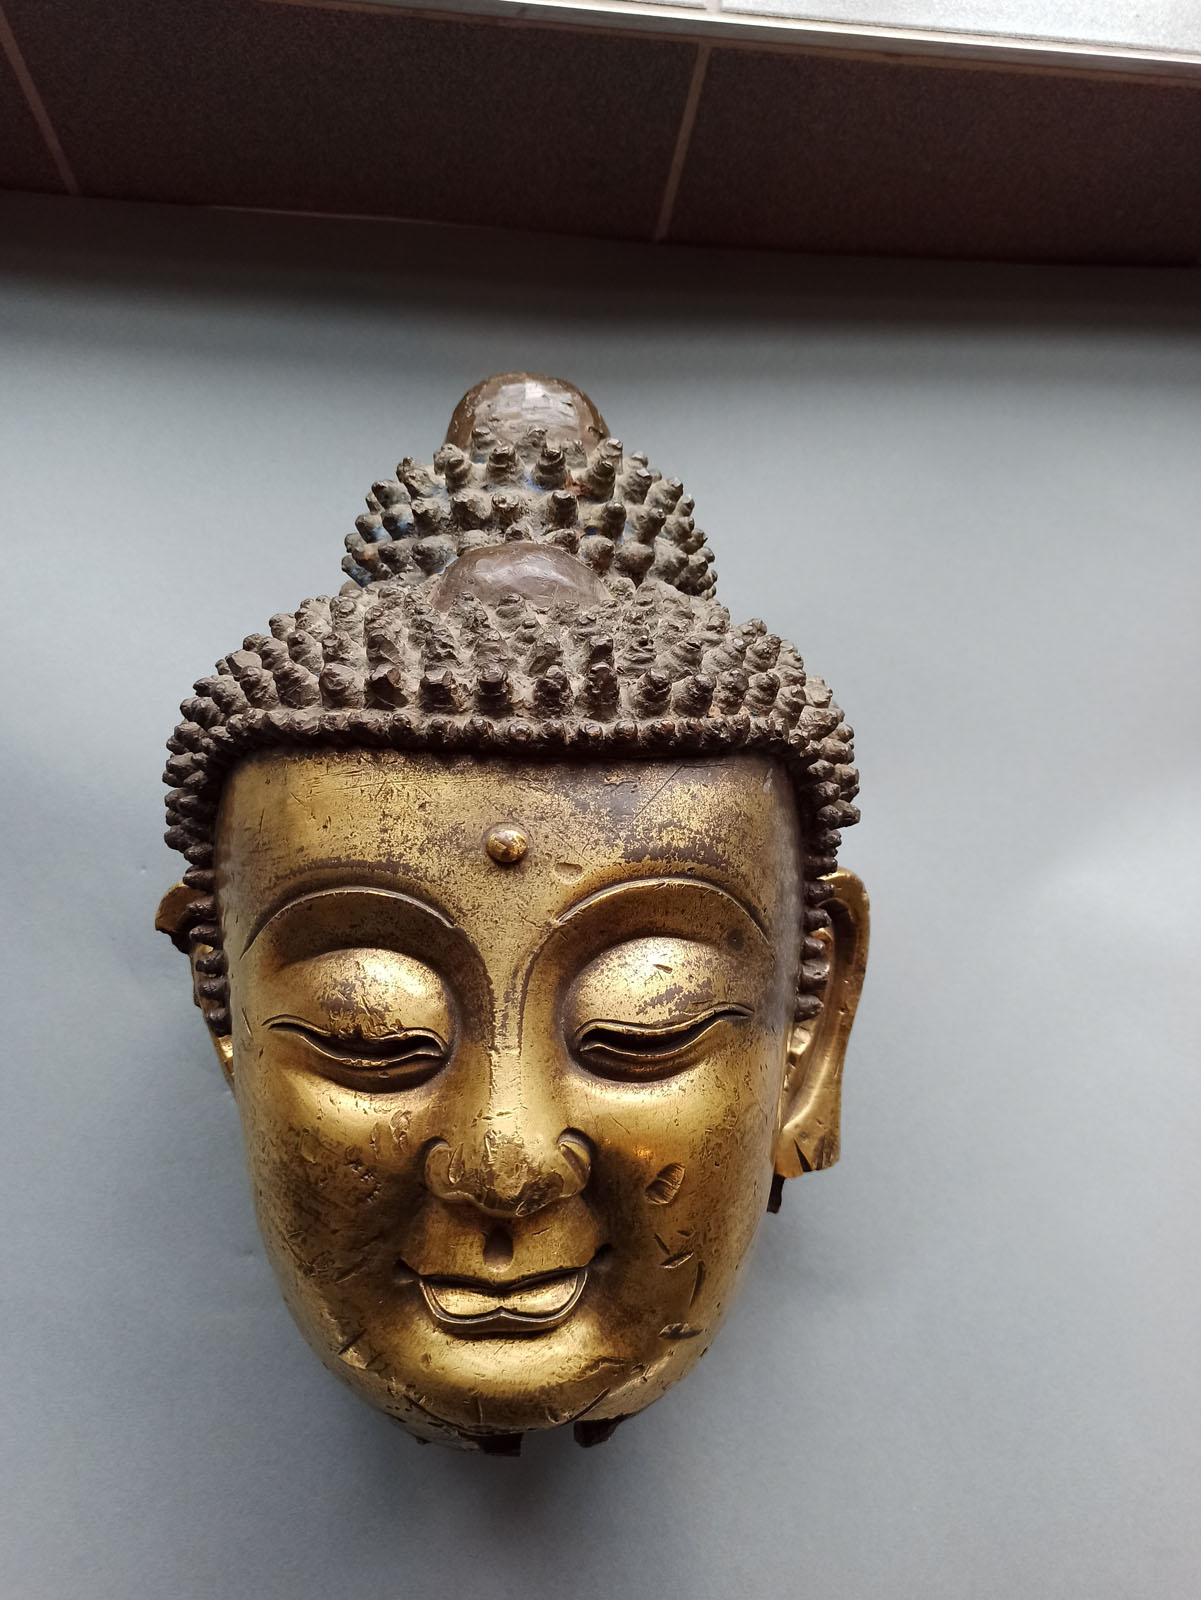 A LARGE GILT-BRONZE HEAD OF BUDDHA ON A WOOD STAND - Image 6 of 13